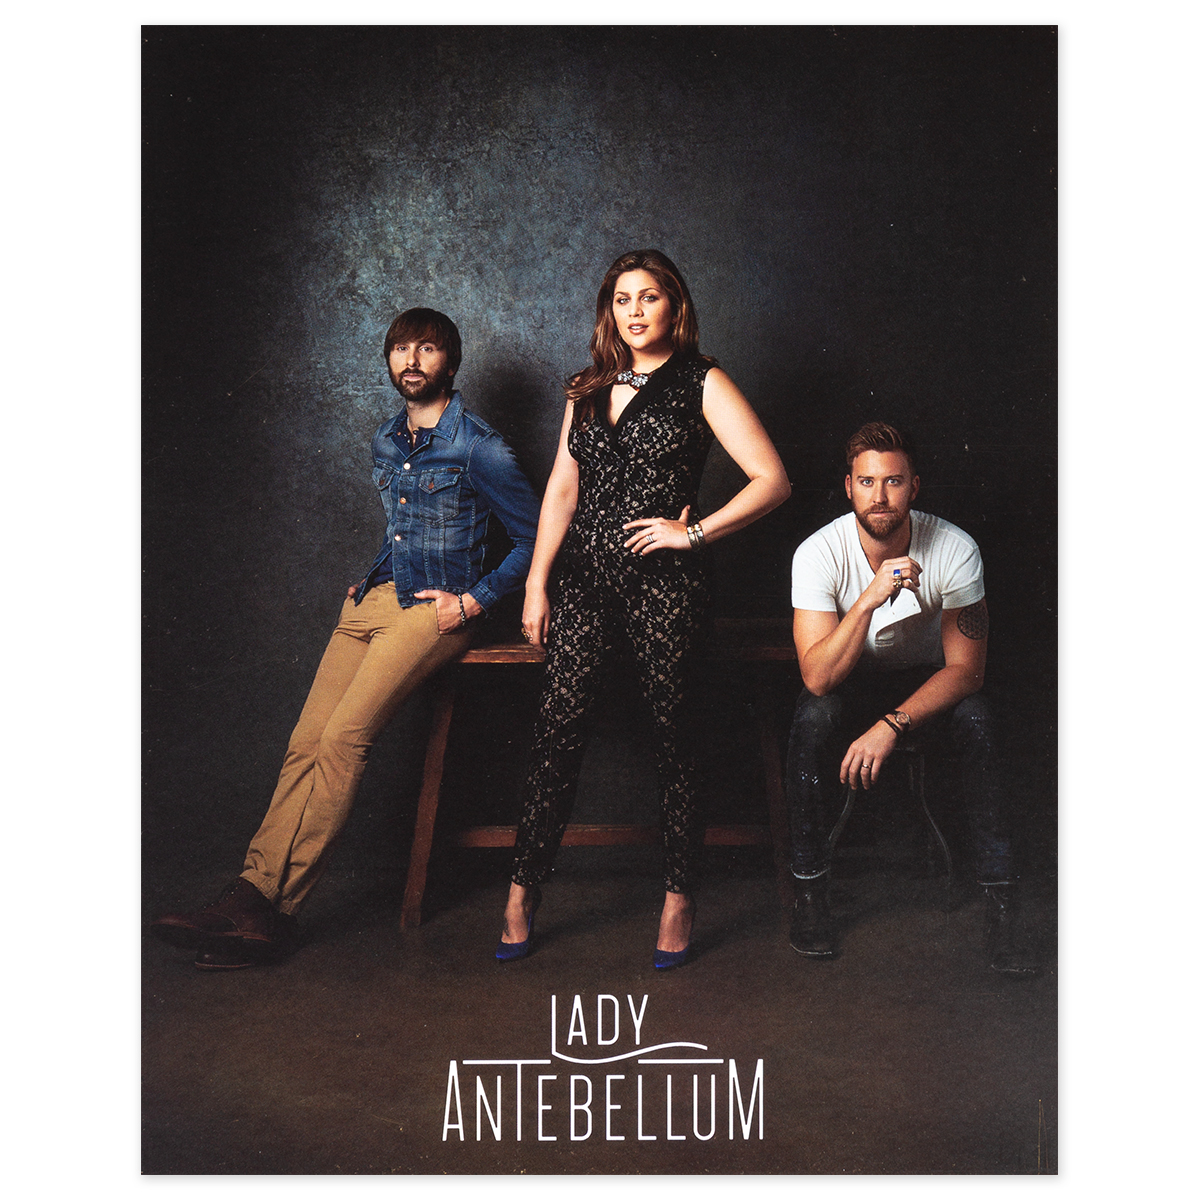 Lady Antebellum Band Photo